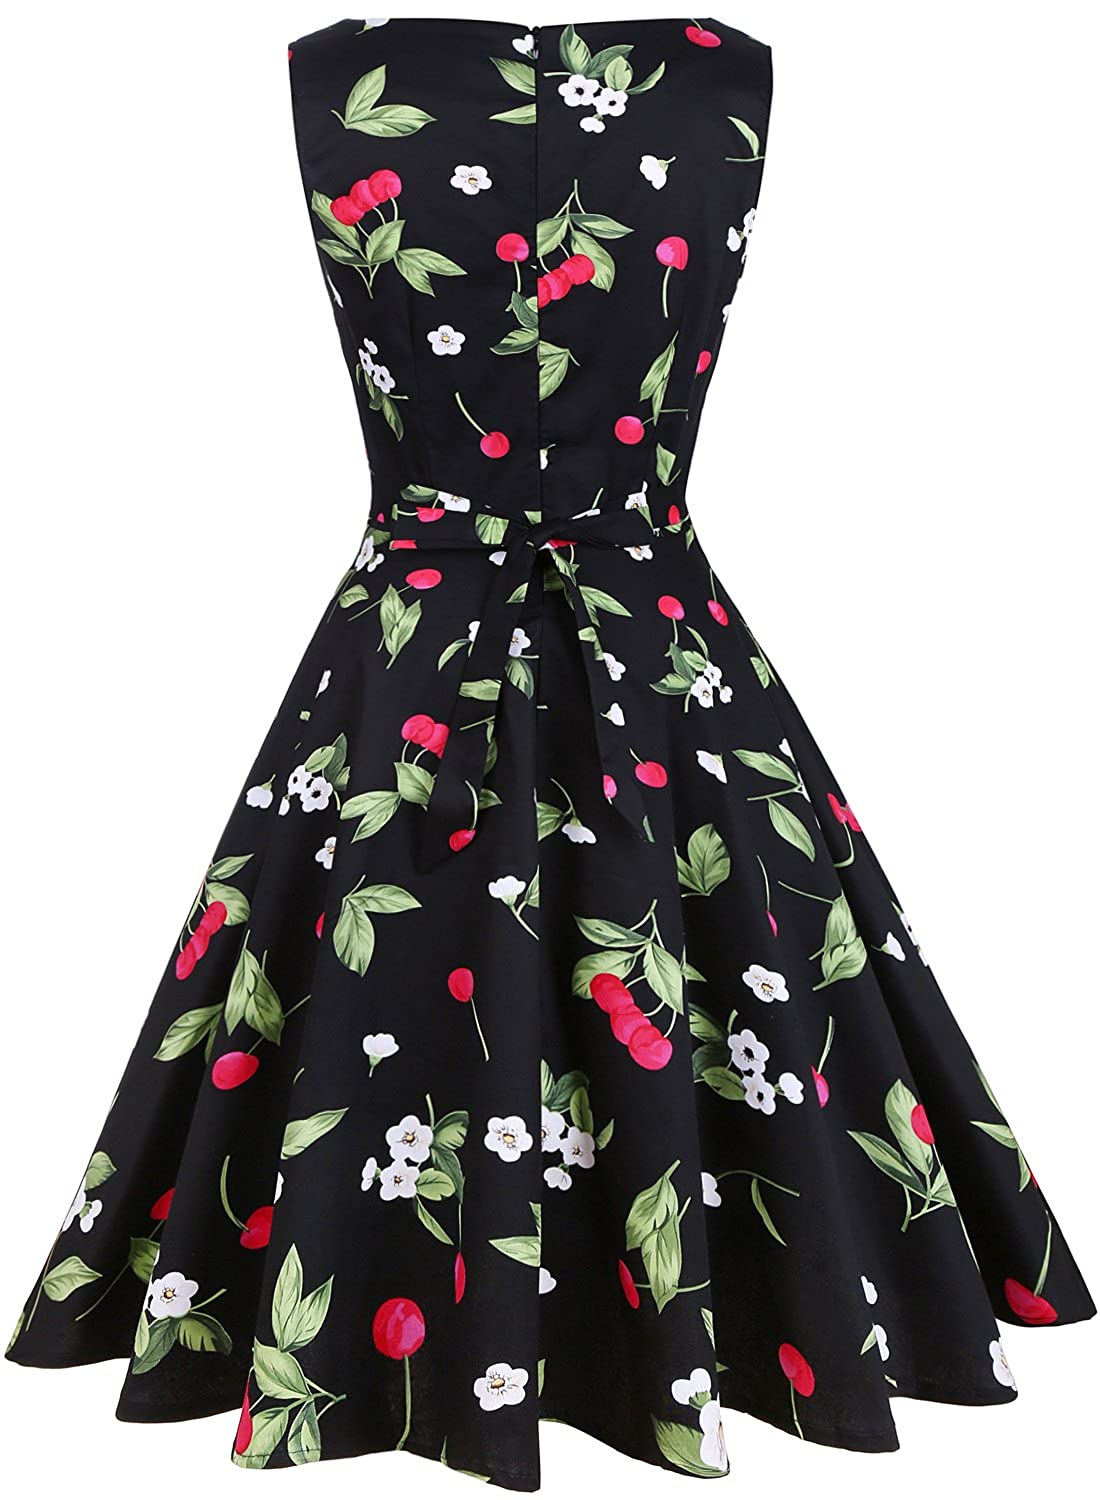 edd5c1010f0 OTEN Women s Vintage 1950s Tea Dress Floral Spring Garden Party Rockabilly  Cocktail Swing Dresses at Amazon Women s Clothing store